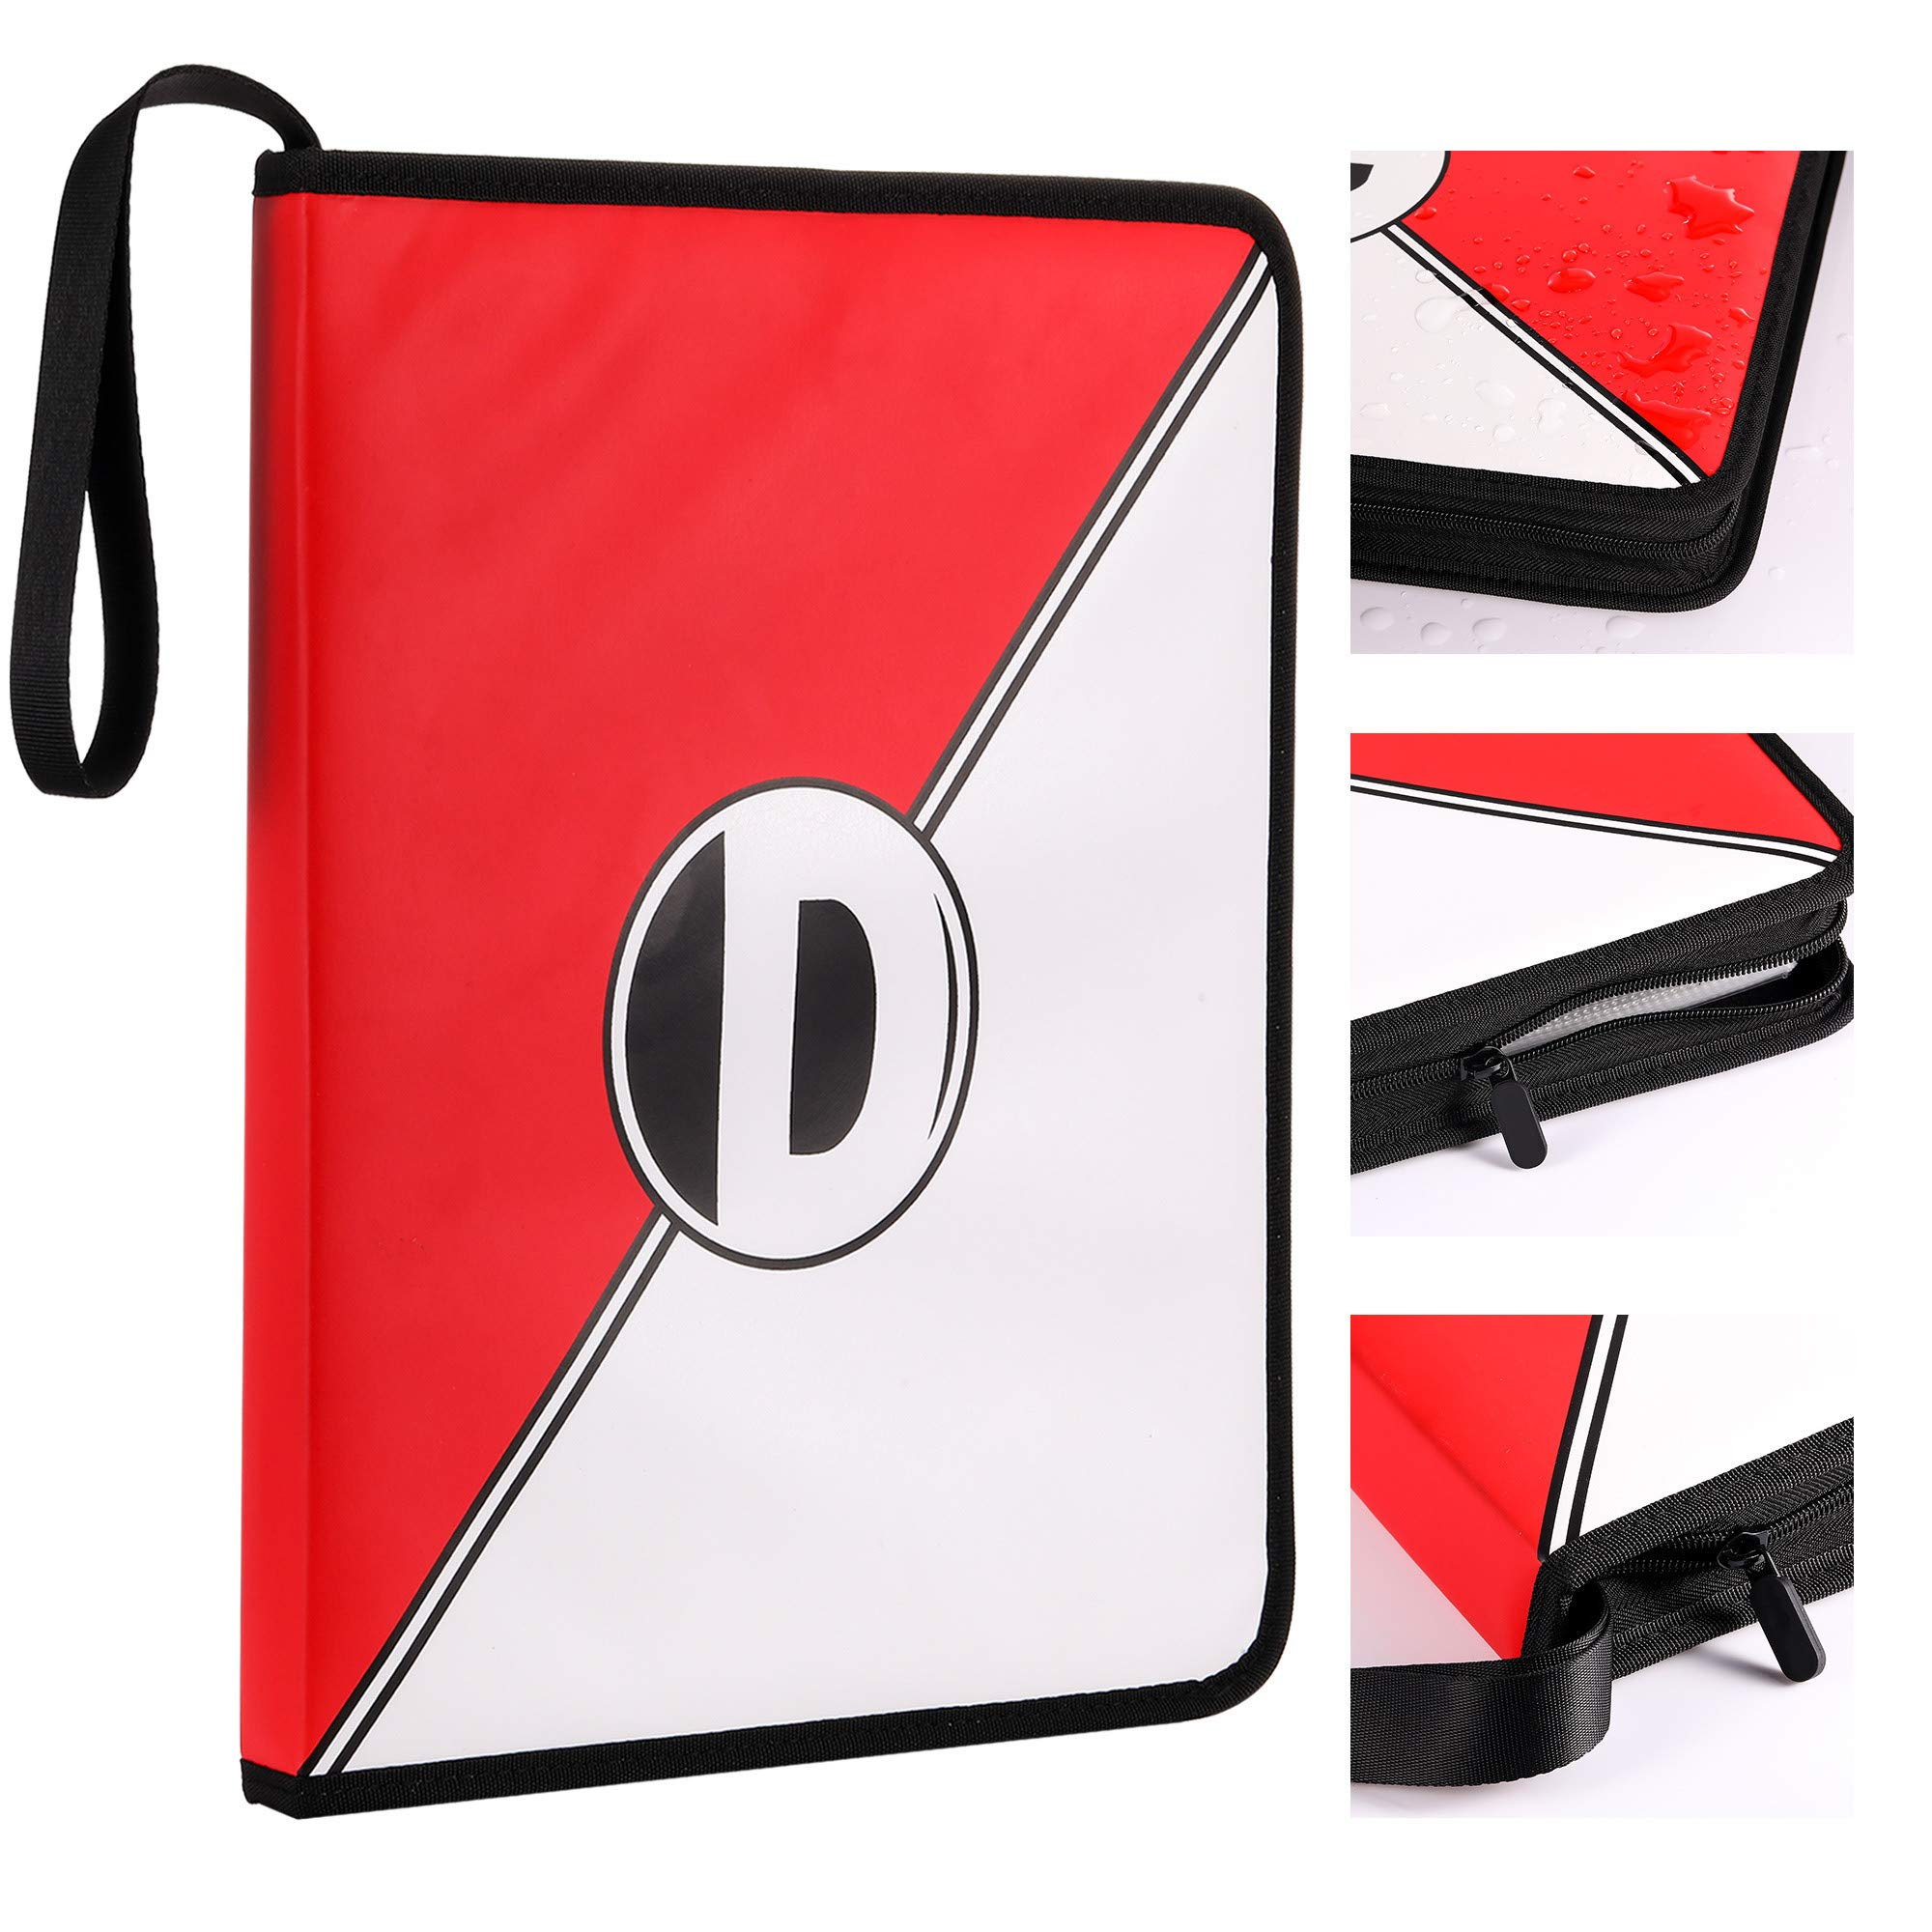 D DACCKIT Carrying Case Compatible with Pokemon Trading Cards, Cards Collectors Album with 30 Premium 9-Pocket Pages, Holds Up to 540 Cards(Red and White Version) by D DACCKIT (Image #3)